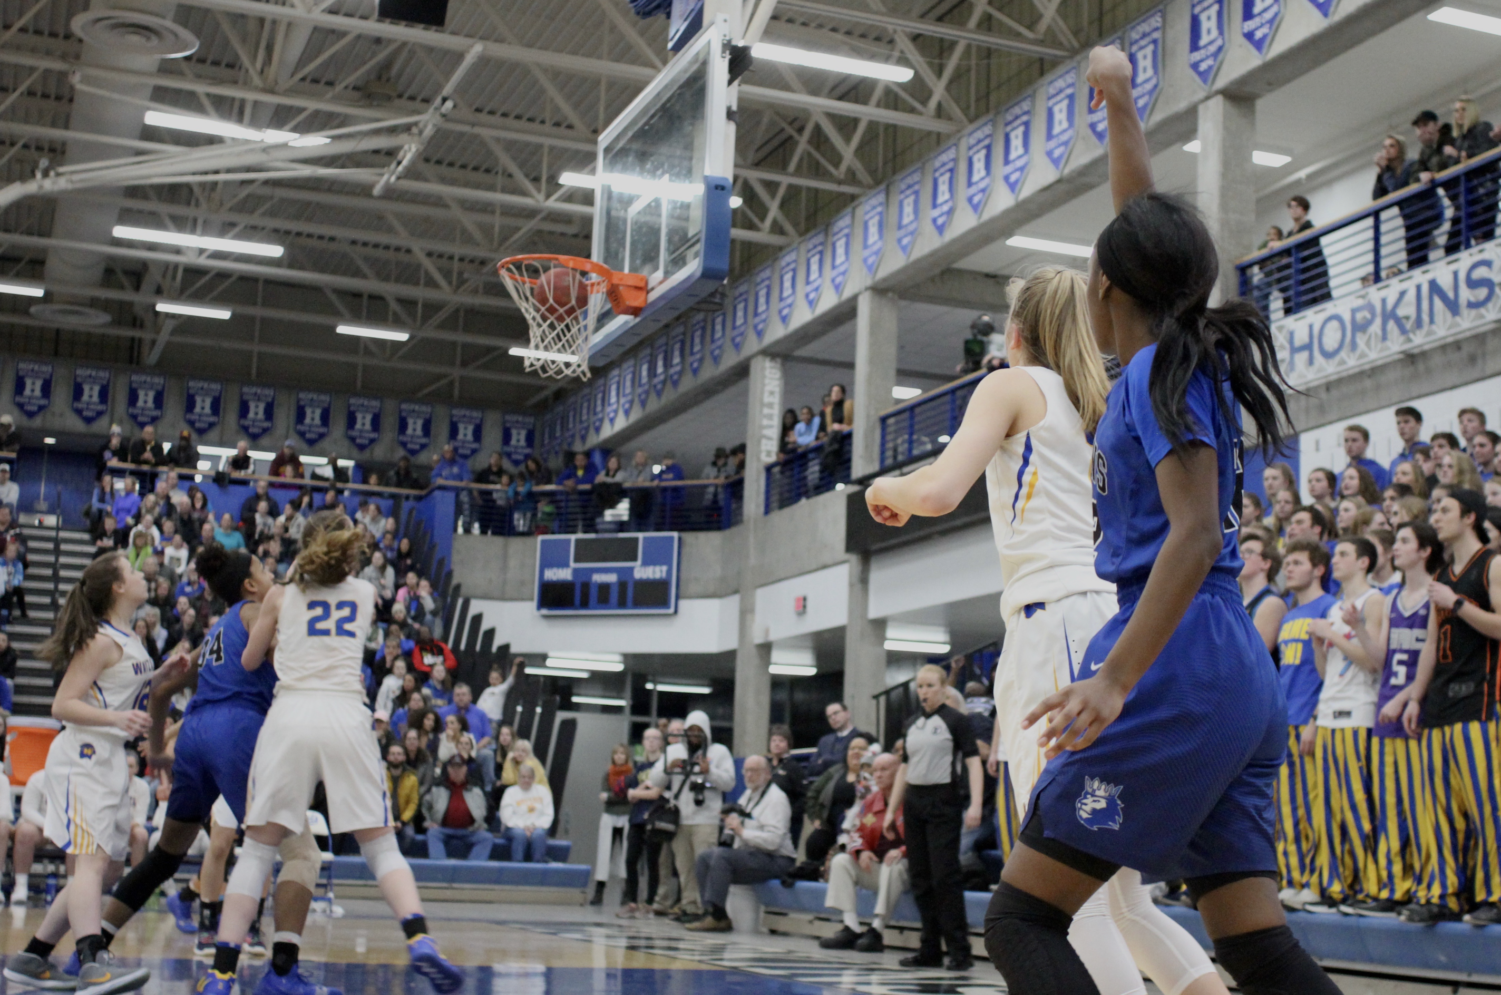 Kayhla Adams, junior, fires up a three from the corner. The Royals took down Wayzata to advance to state.